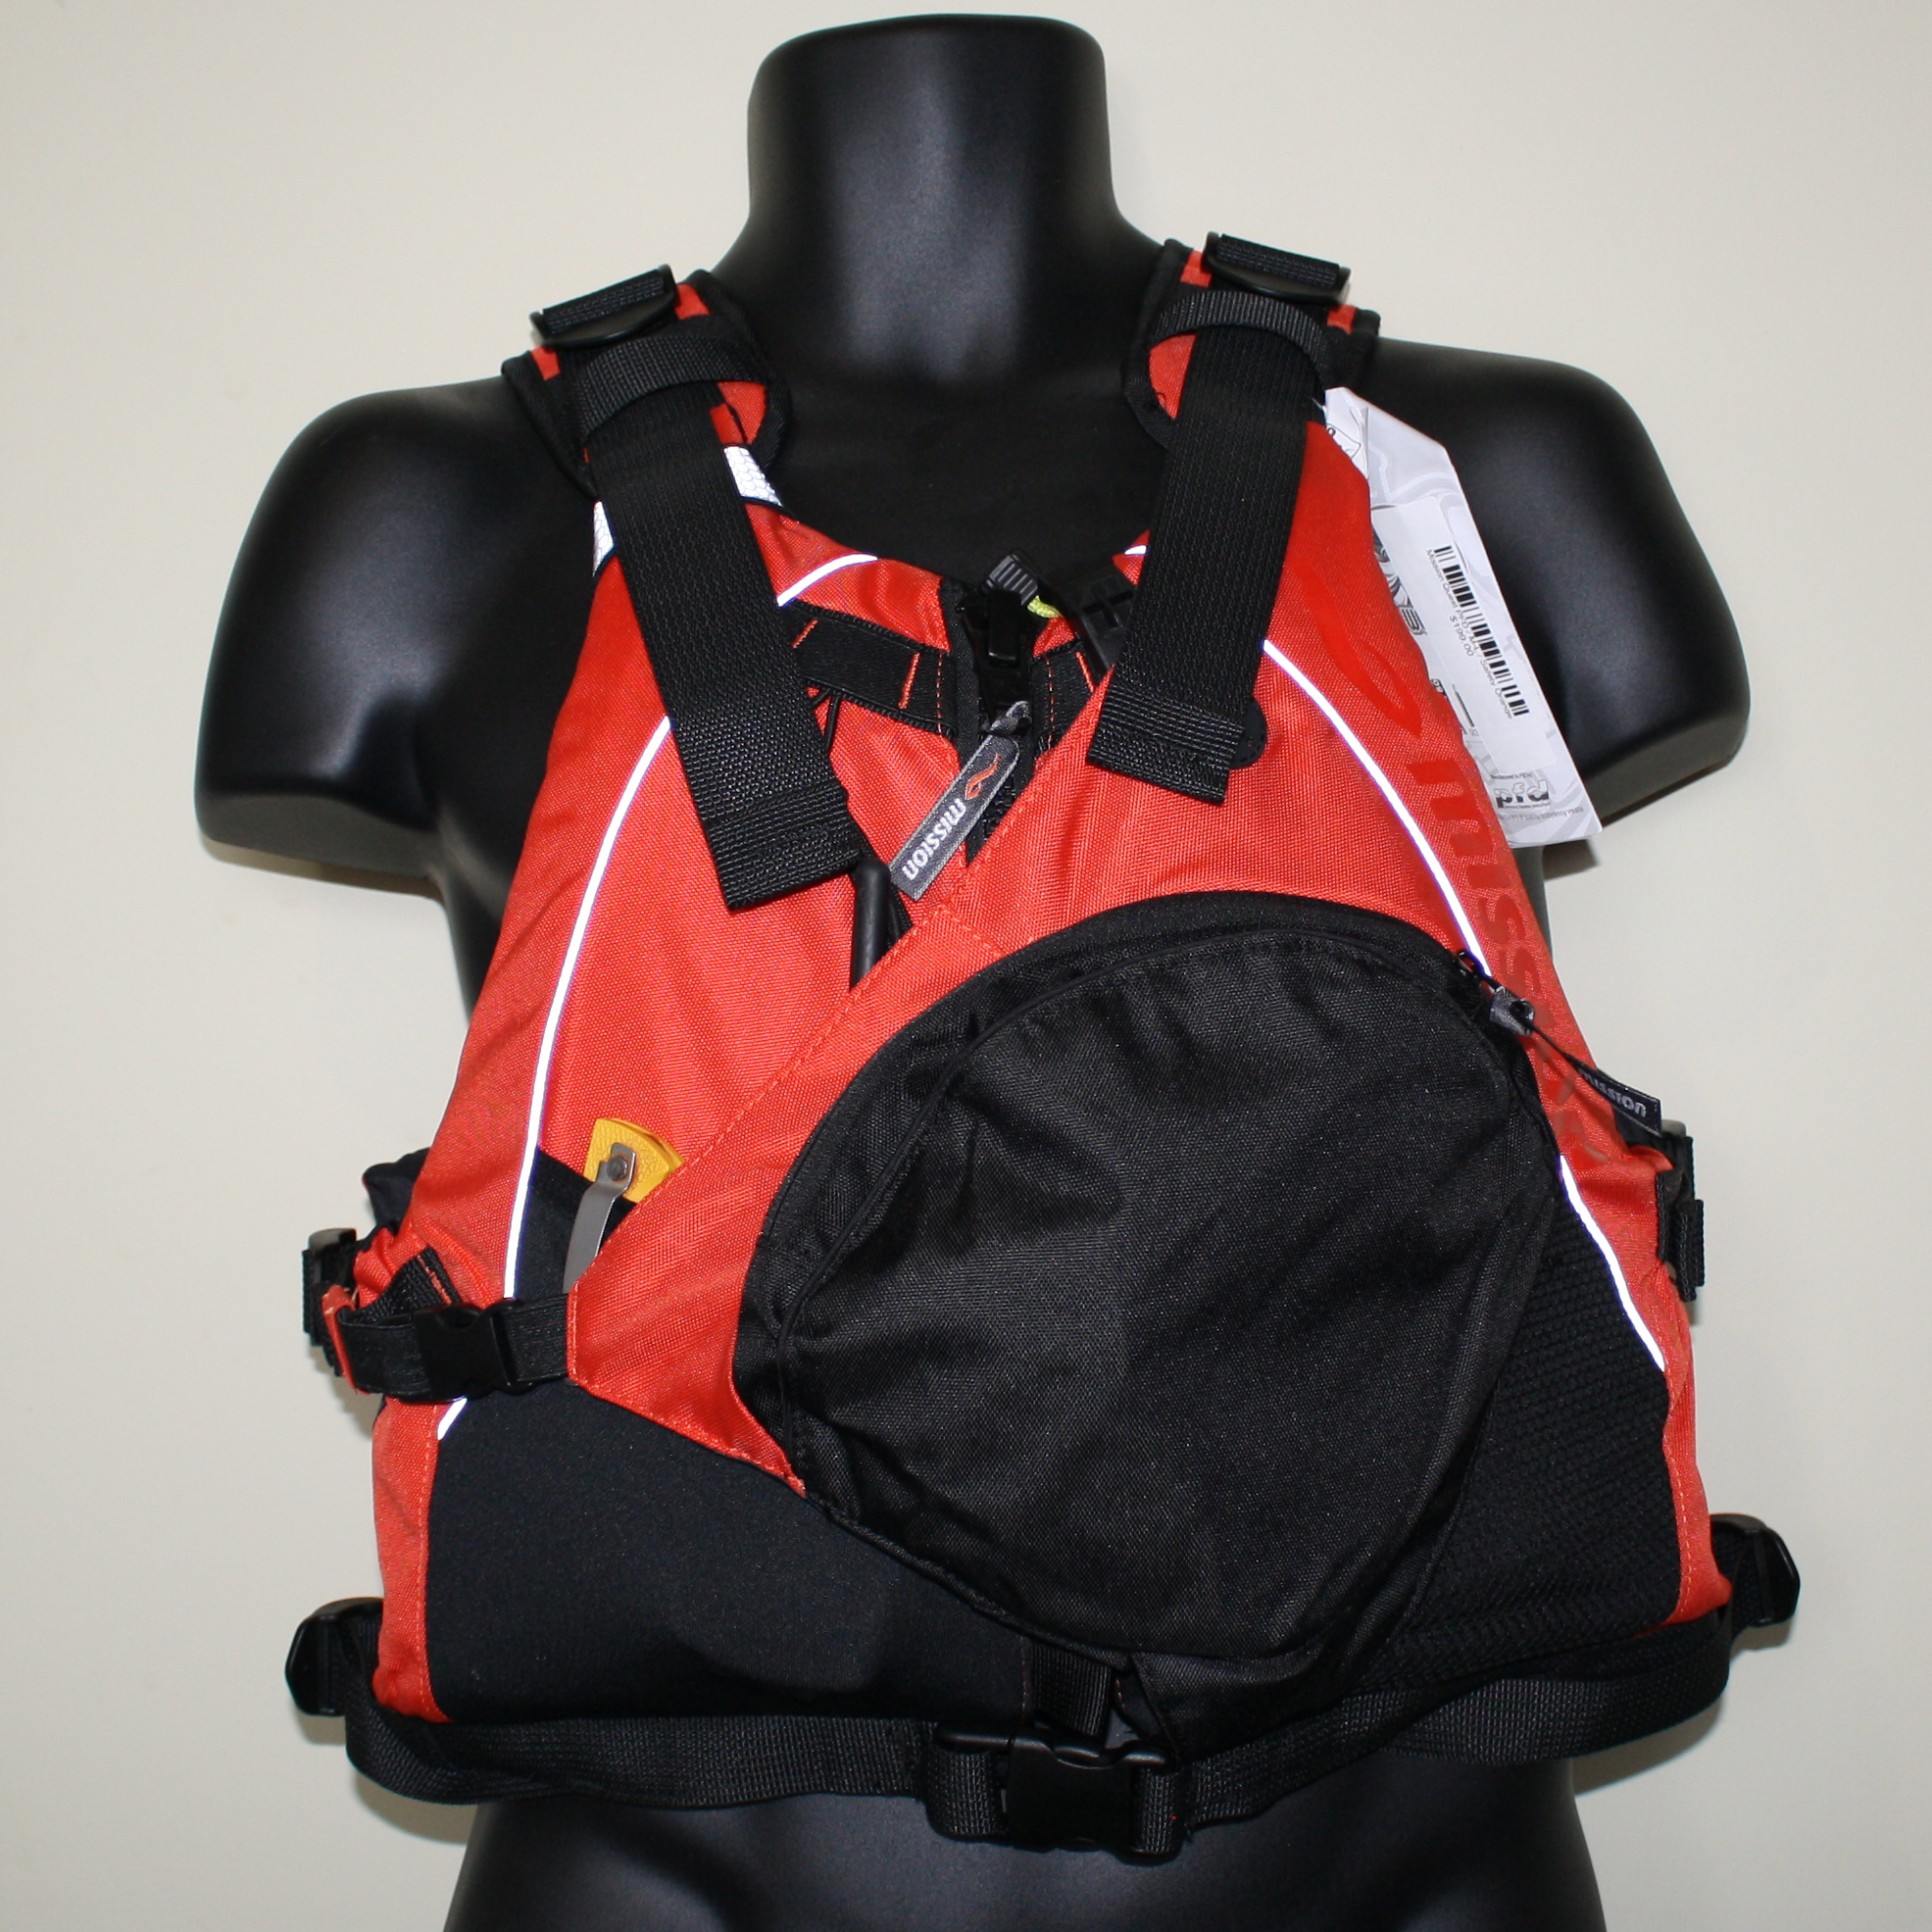 How much pocket space does a Mission Quest PFD have?